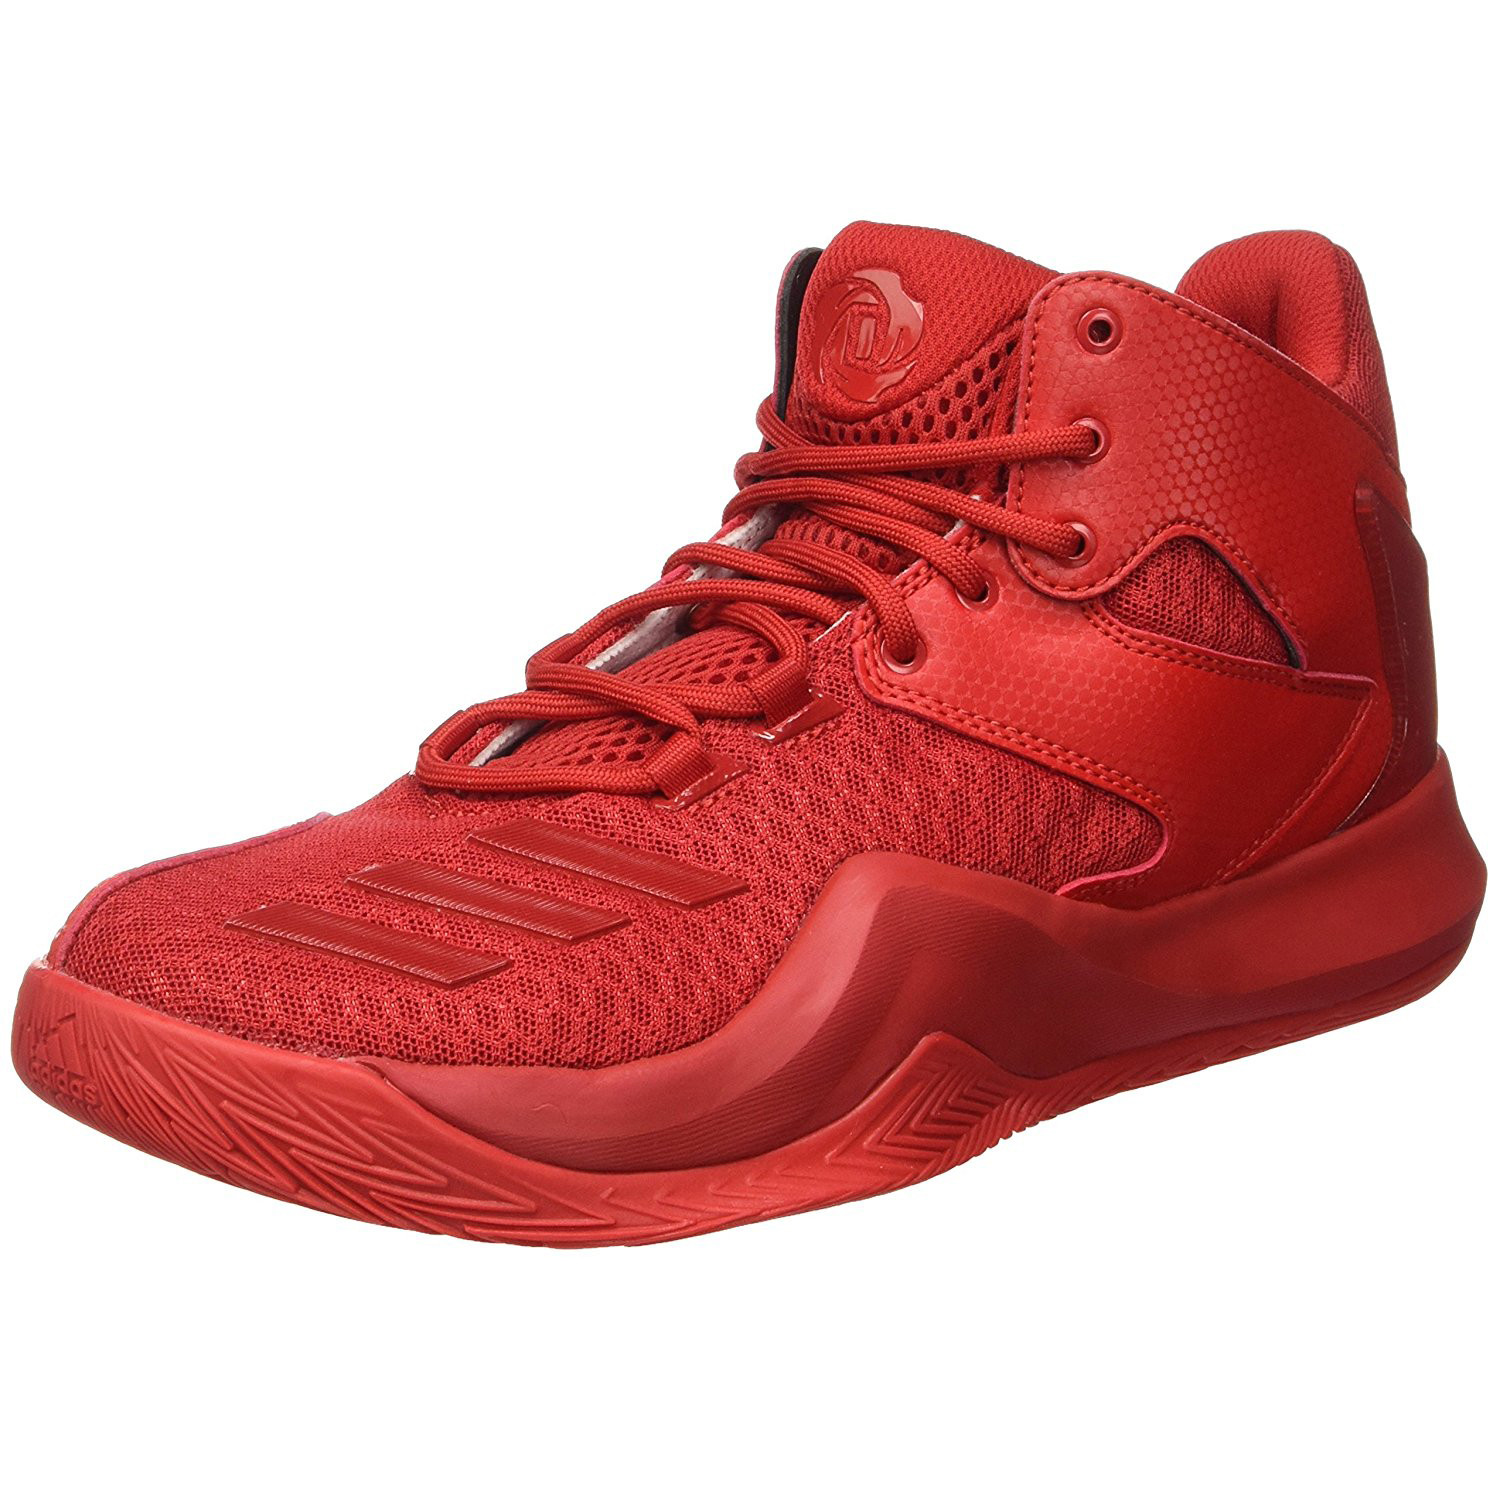 adidas chaussures rouge homme